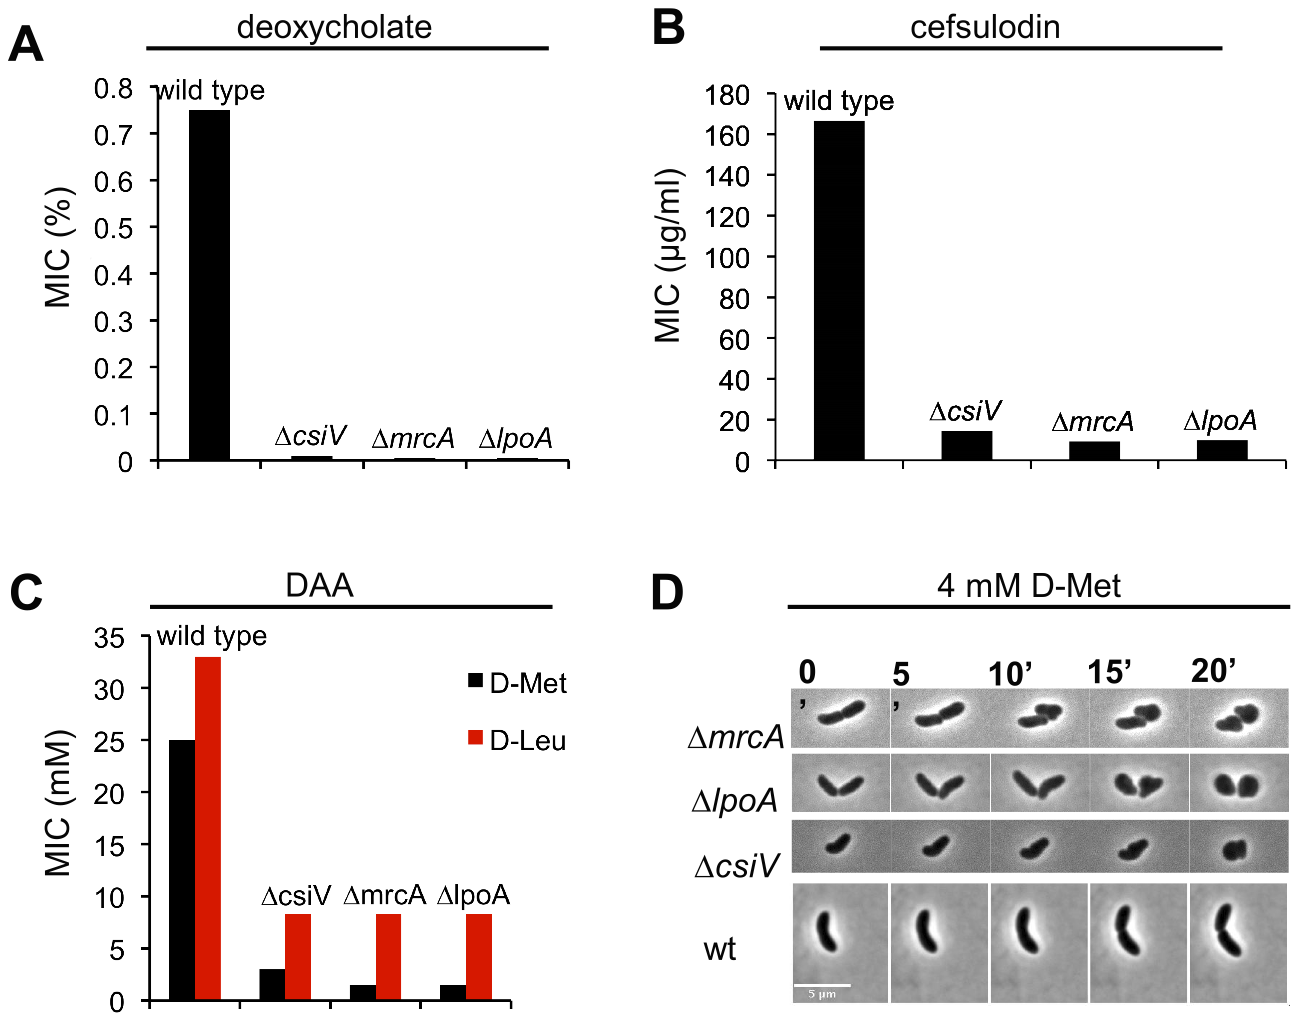 A <i>csiV</i> mutant phenocopies the growth deficiencies of <i>mrcA</i> and <i>lpoA</i> mutants.